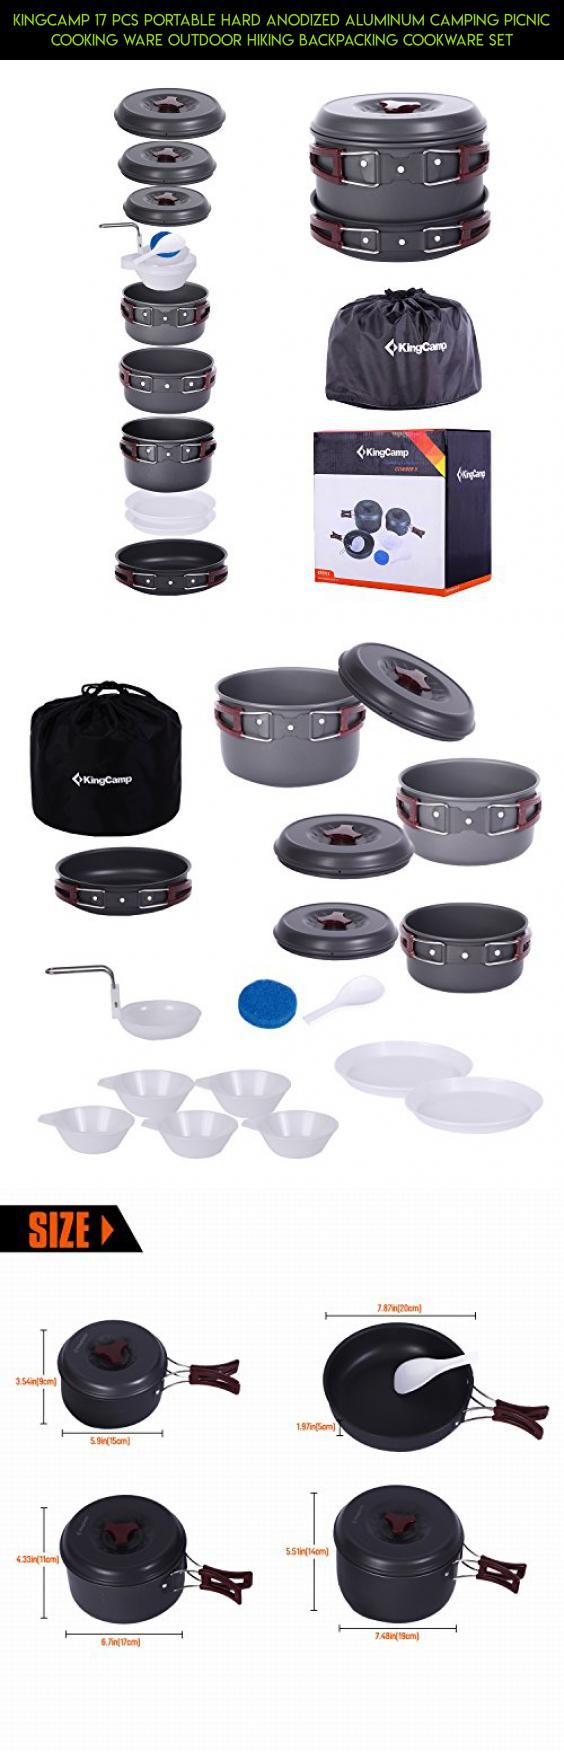 KingCamp 17 Pcs Portable Hard Anodized Aluminum Camping Picnic Cooking Ware Outdoor Hiking Backpacking Cookware Set #drone #ware #tech #kit #products #technology #outdoor #parts #fpv #racing #gadgets #camera #cooking #plans #shopping